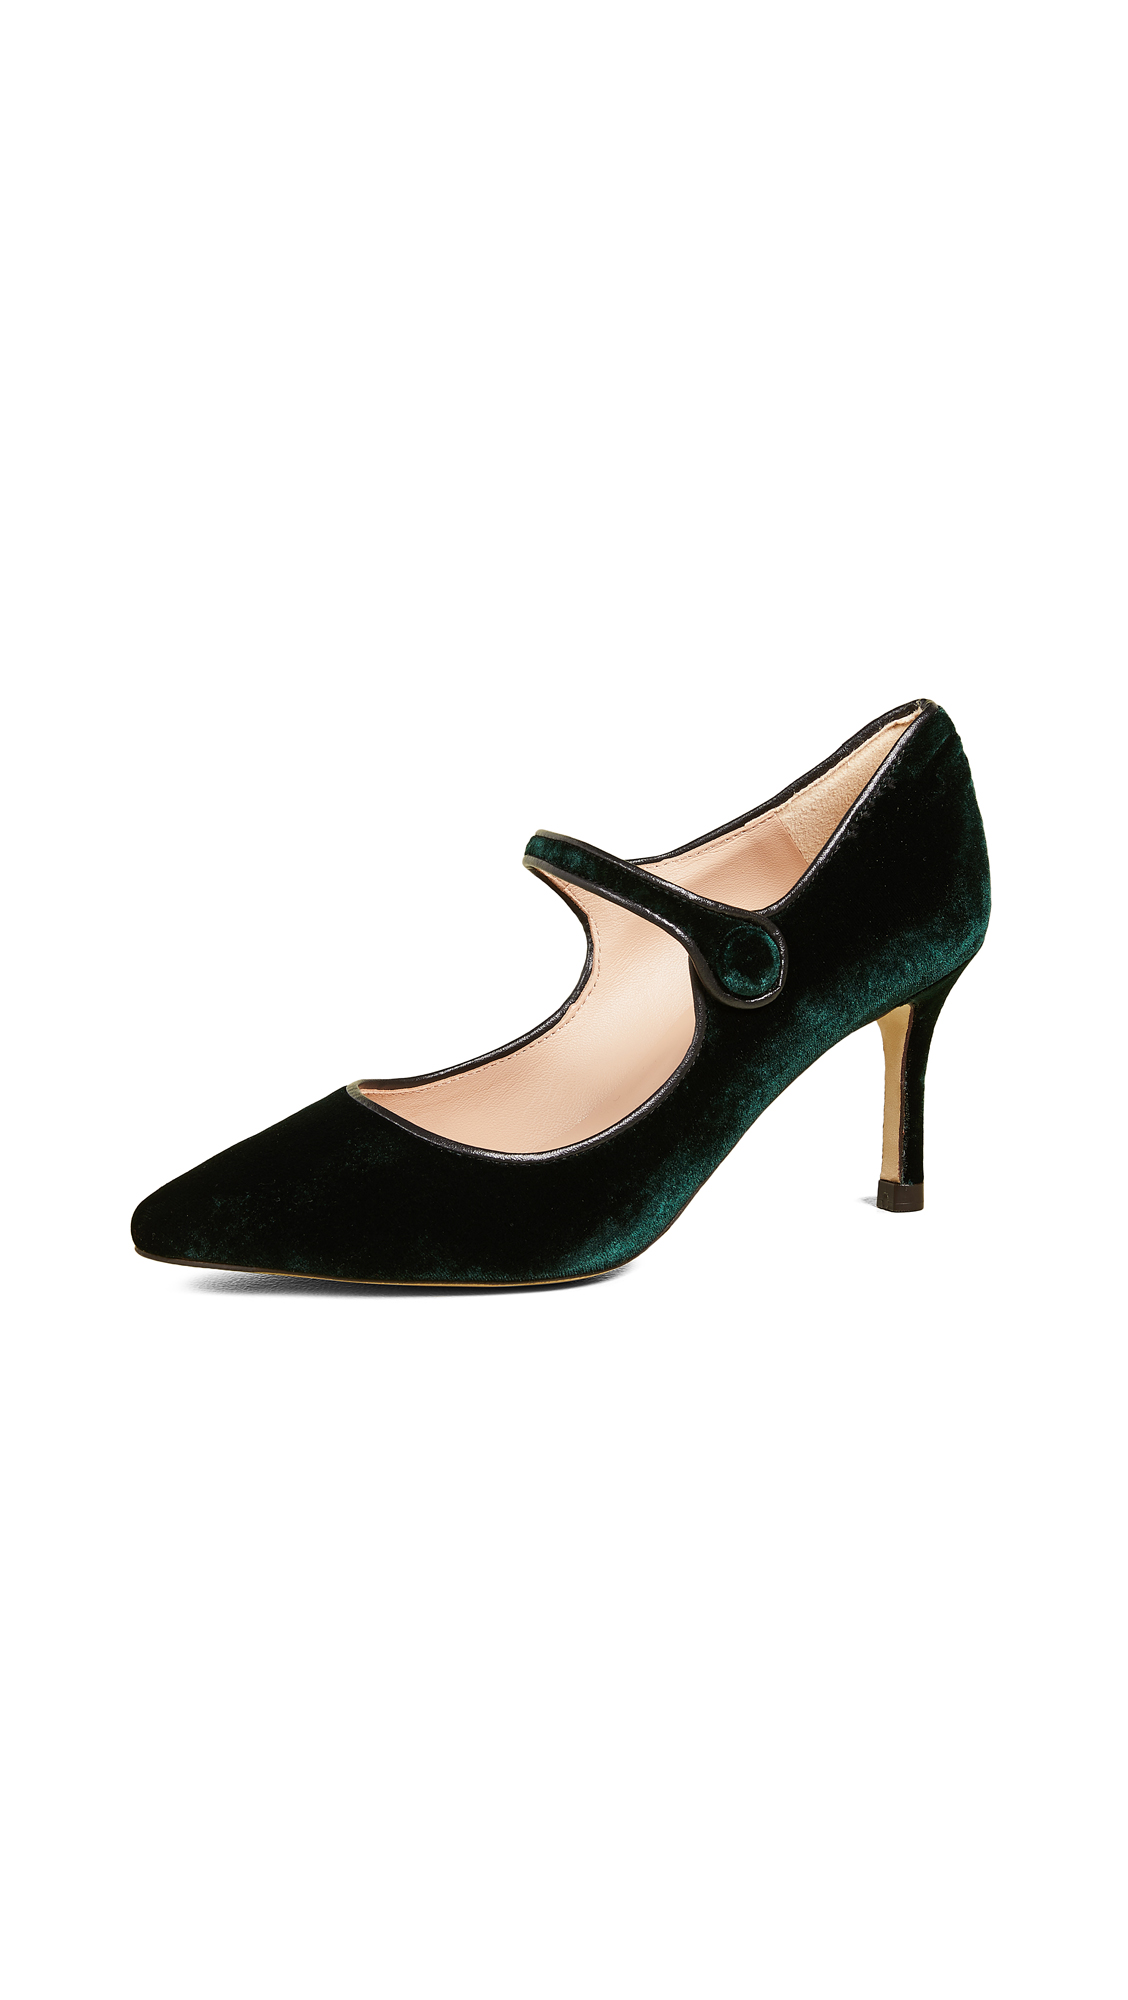 L.K. Bennett Monica Mary Jane Pumps - Ivy Green